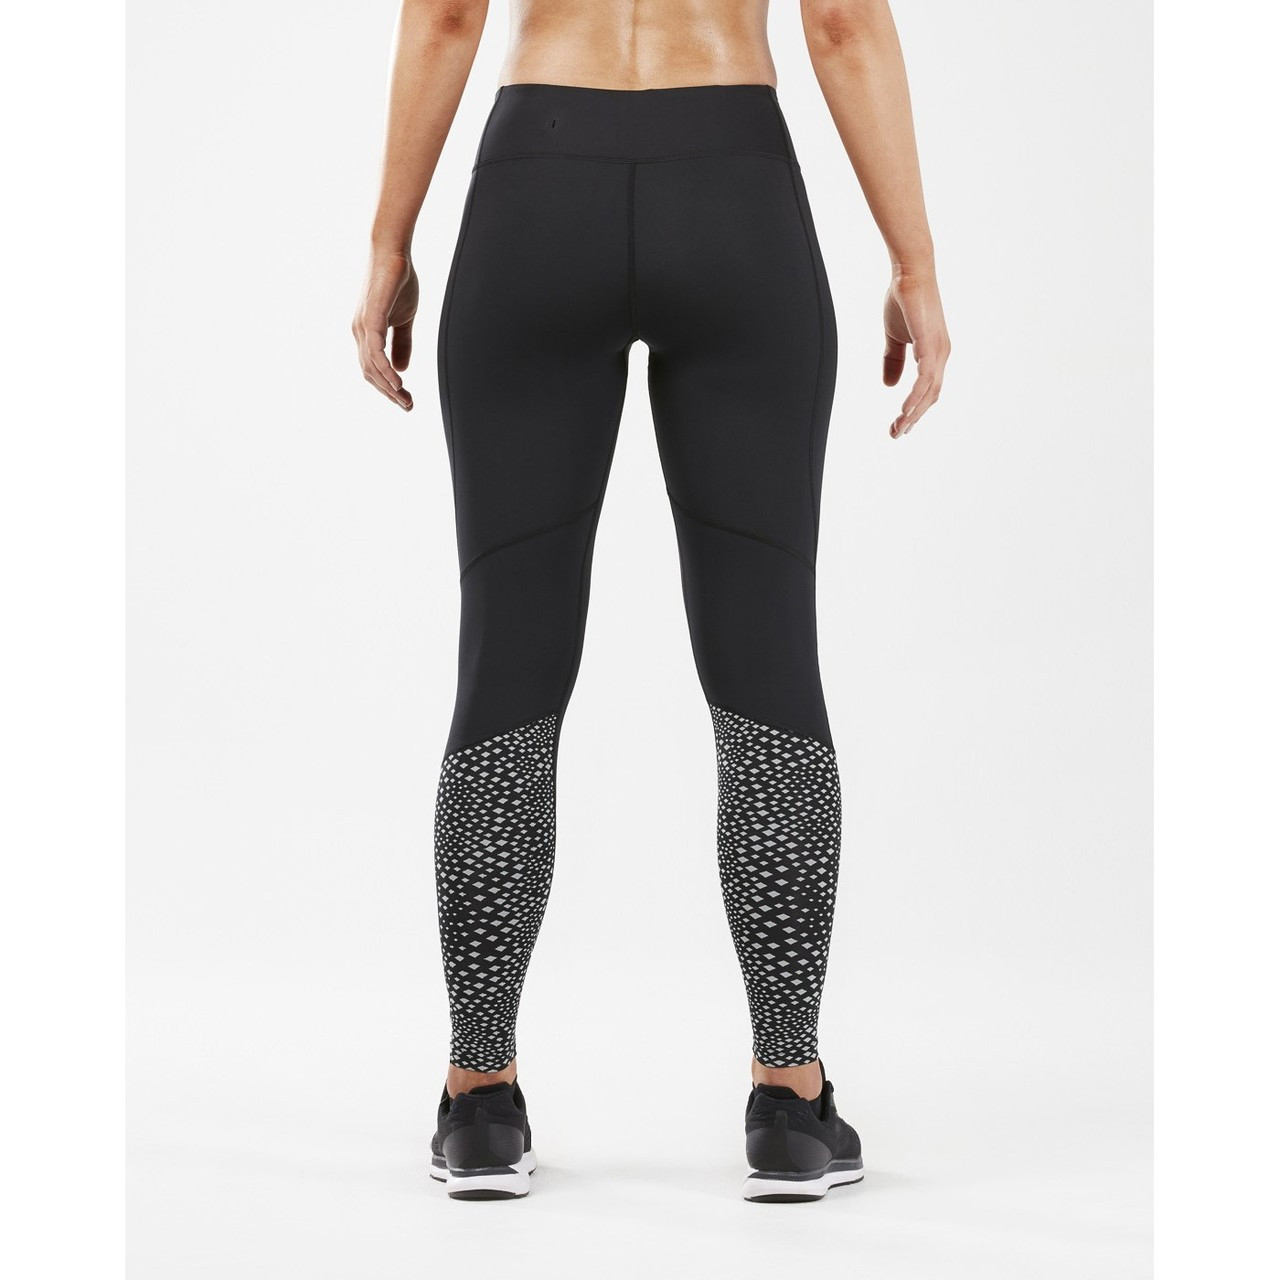 8058fe764de110 ... 2XU Women's Reflect Mid-Rise Compression Tight with Storage - Back